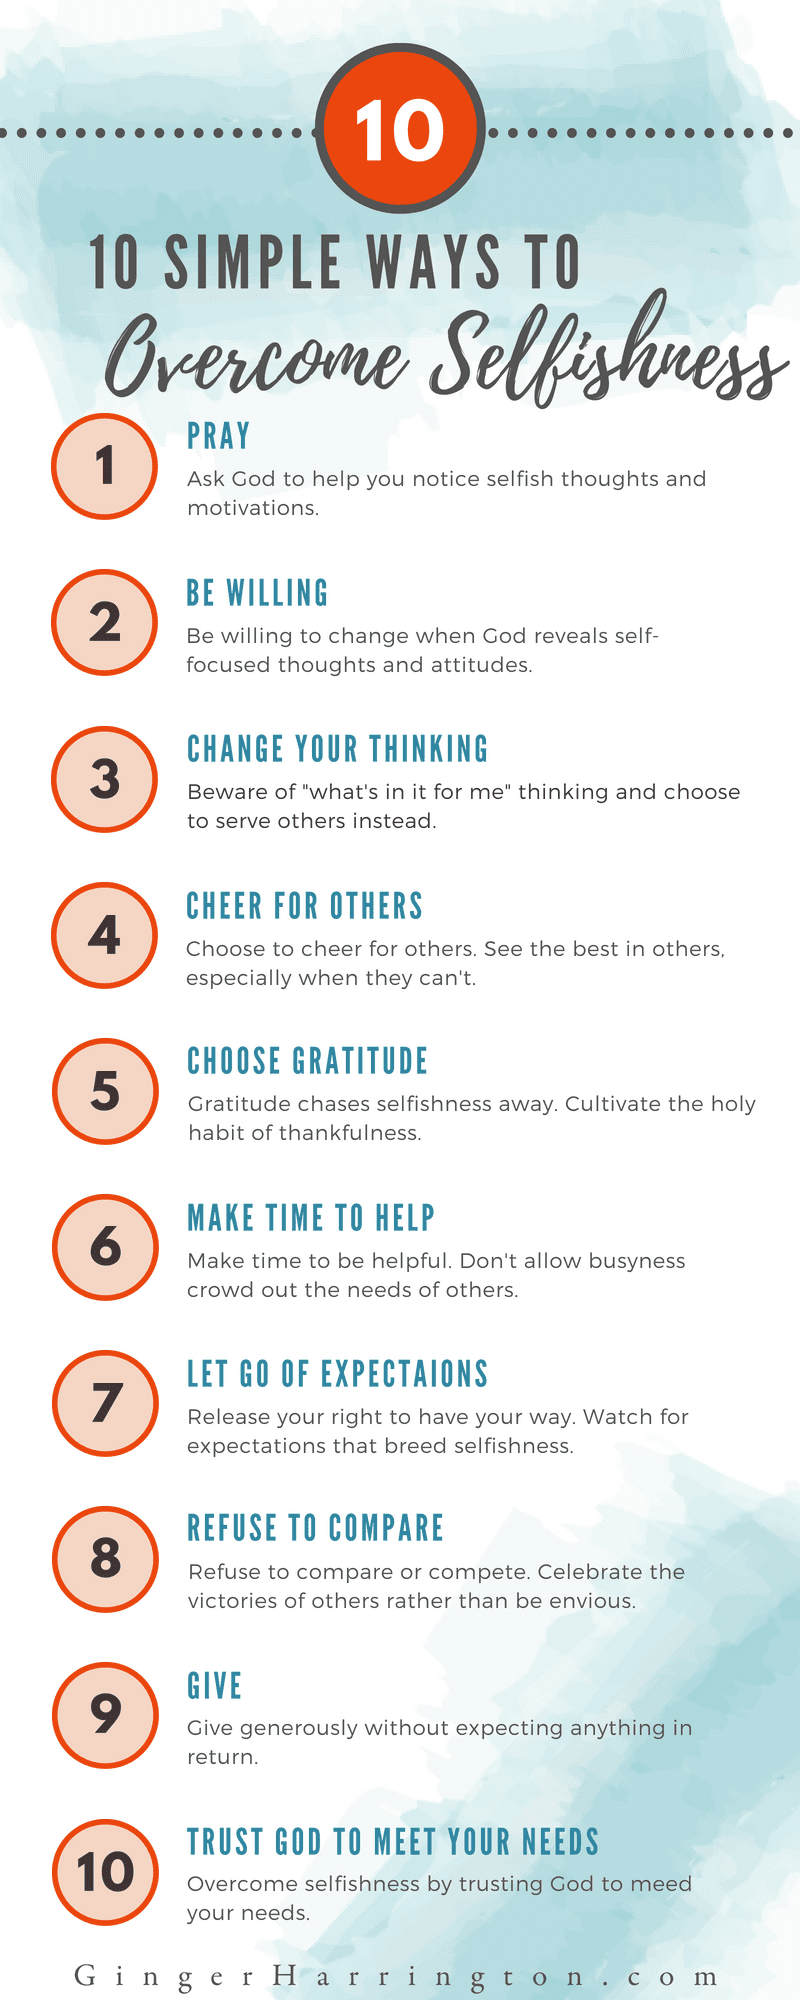 10 Simple Ways to Overcome Selfishness Infographic from GingerHarrington, author of Holy in the Moment.